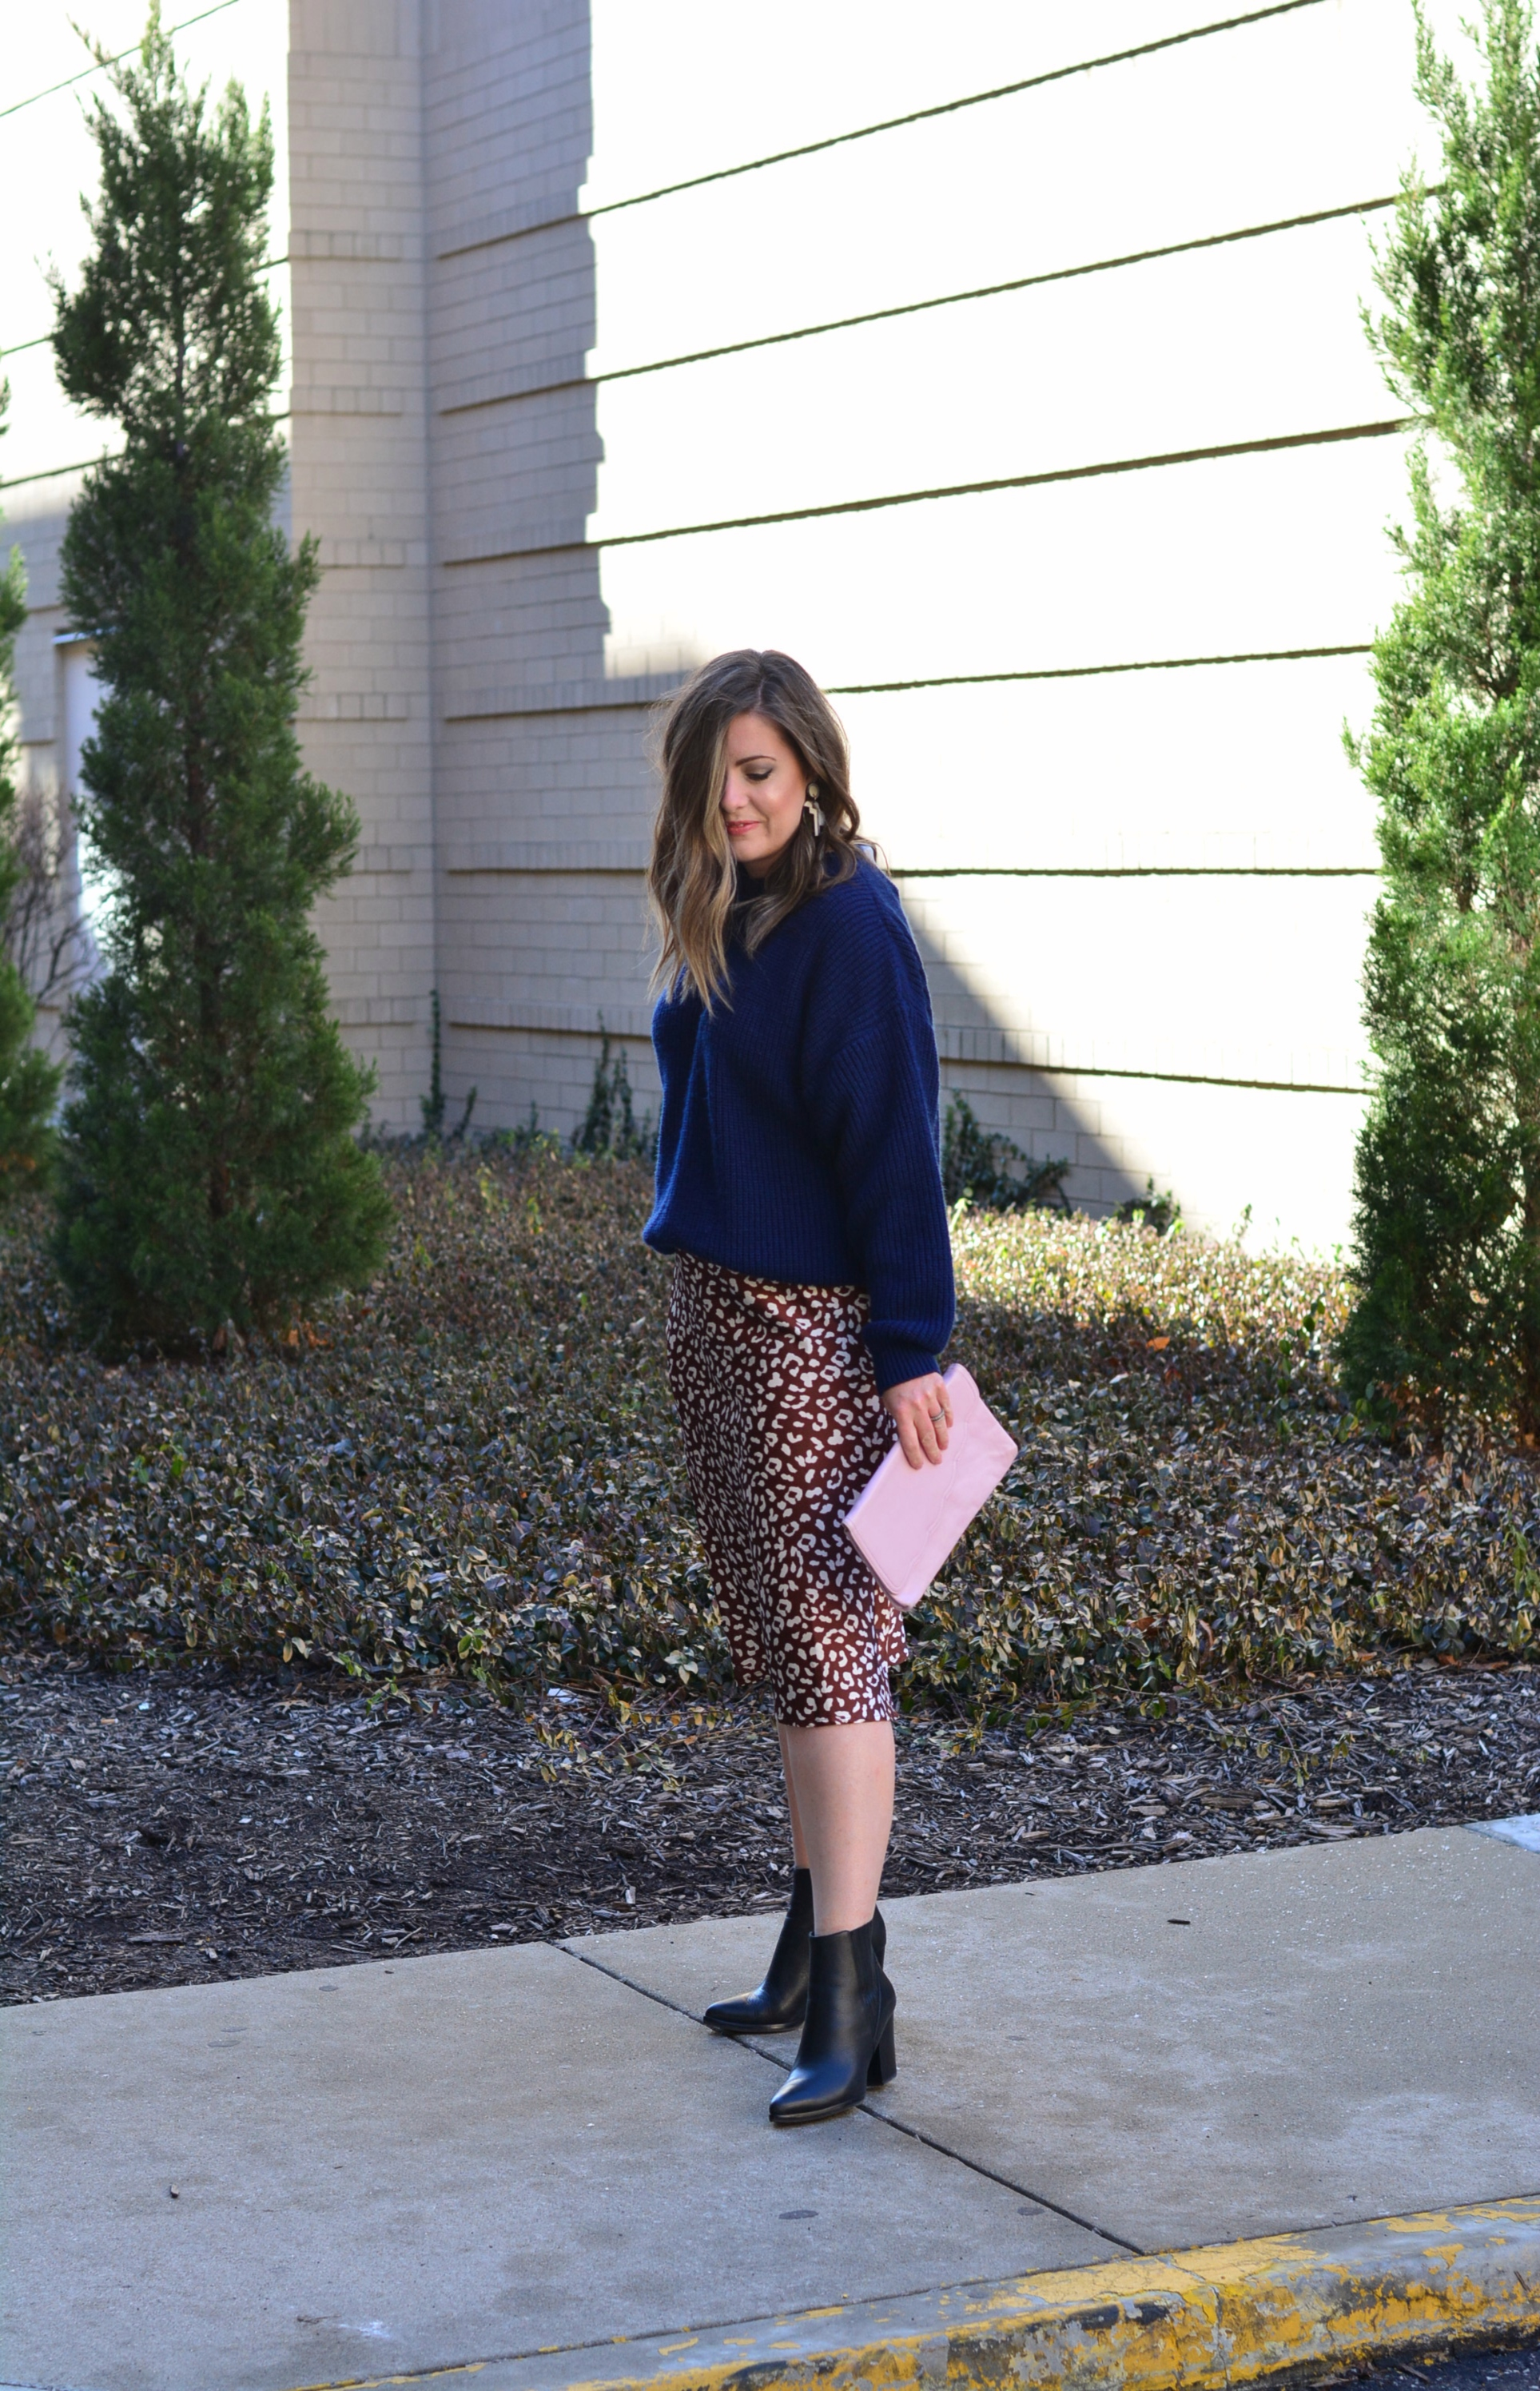 Knit sweater with leopard midi skirt | Sophisticaited by Cait Fore